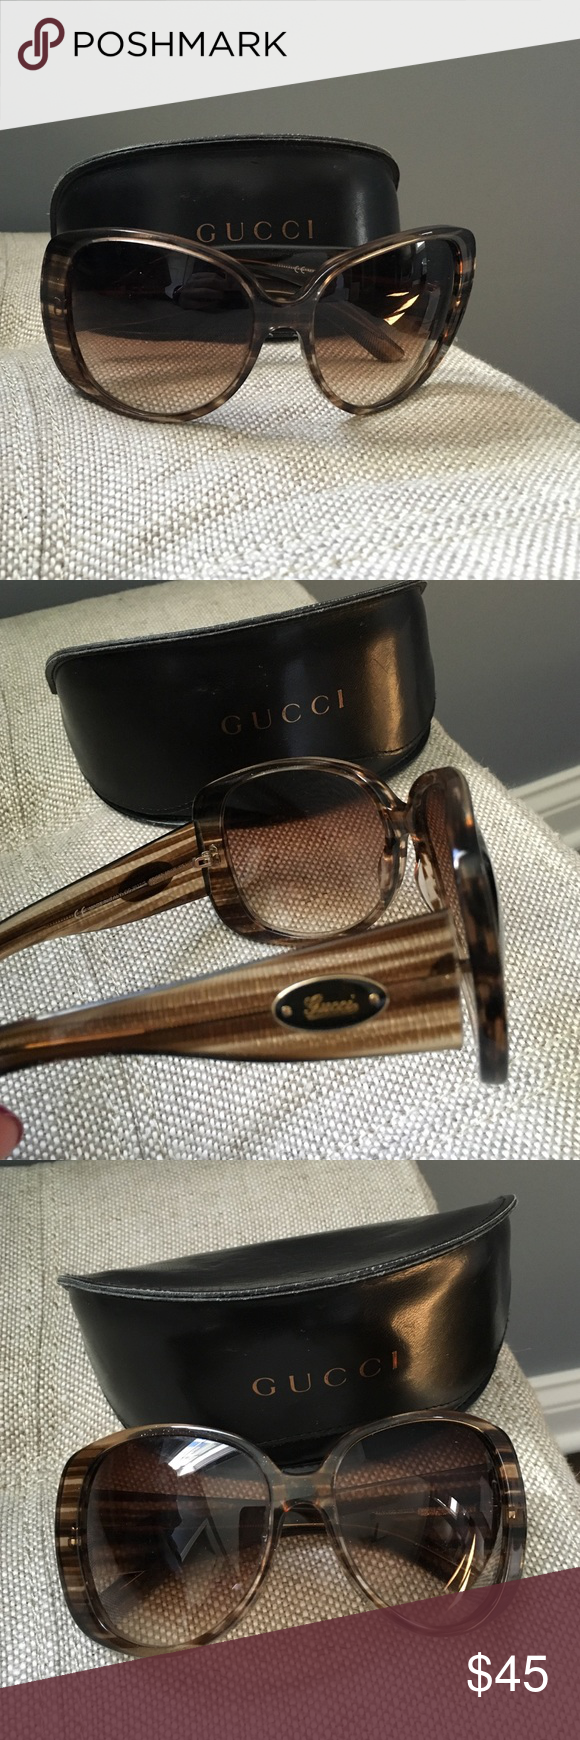 Gucci sunglasses Gucci oversized sunglasses, tortoise color stripe with sparkle.  Wrap around feel, comes with original case and cleaning wipe! Gucci Accessories Sunglasses